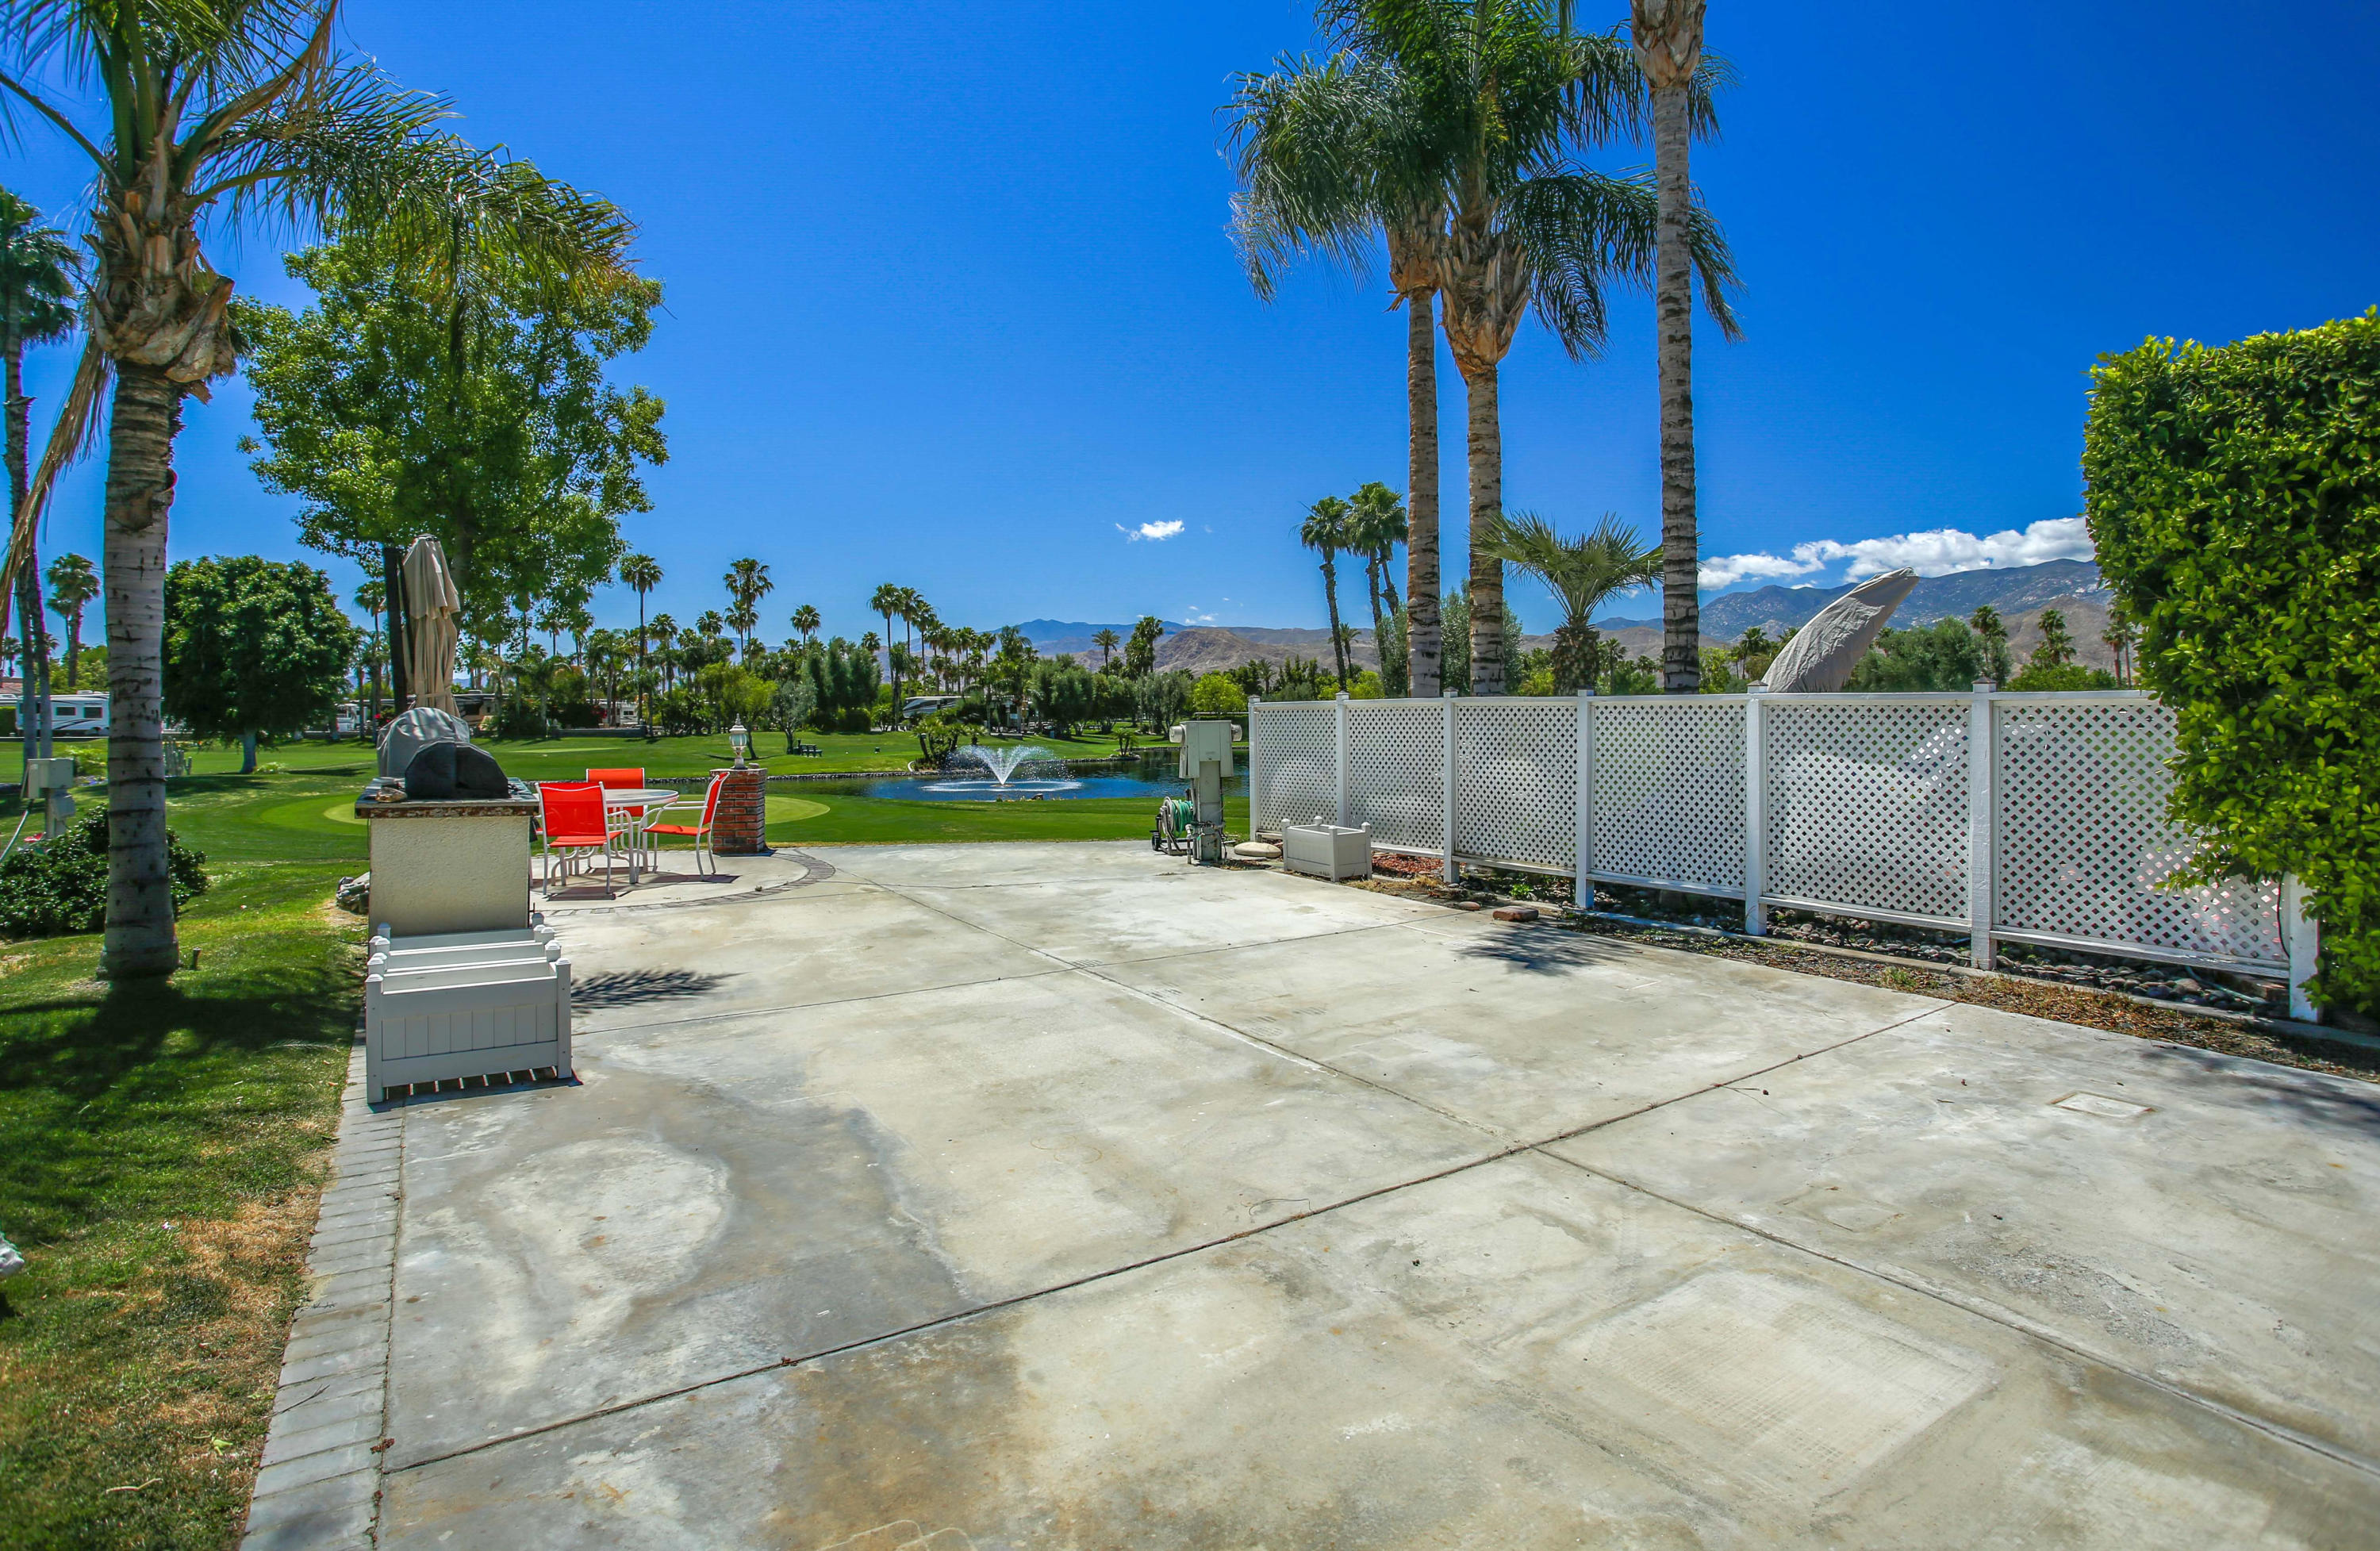 69411 Ramon Road, Cathedral City, California 92234, ,Land,For Sale,69411 Ramon Road,219043462